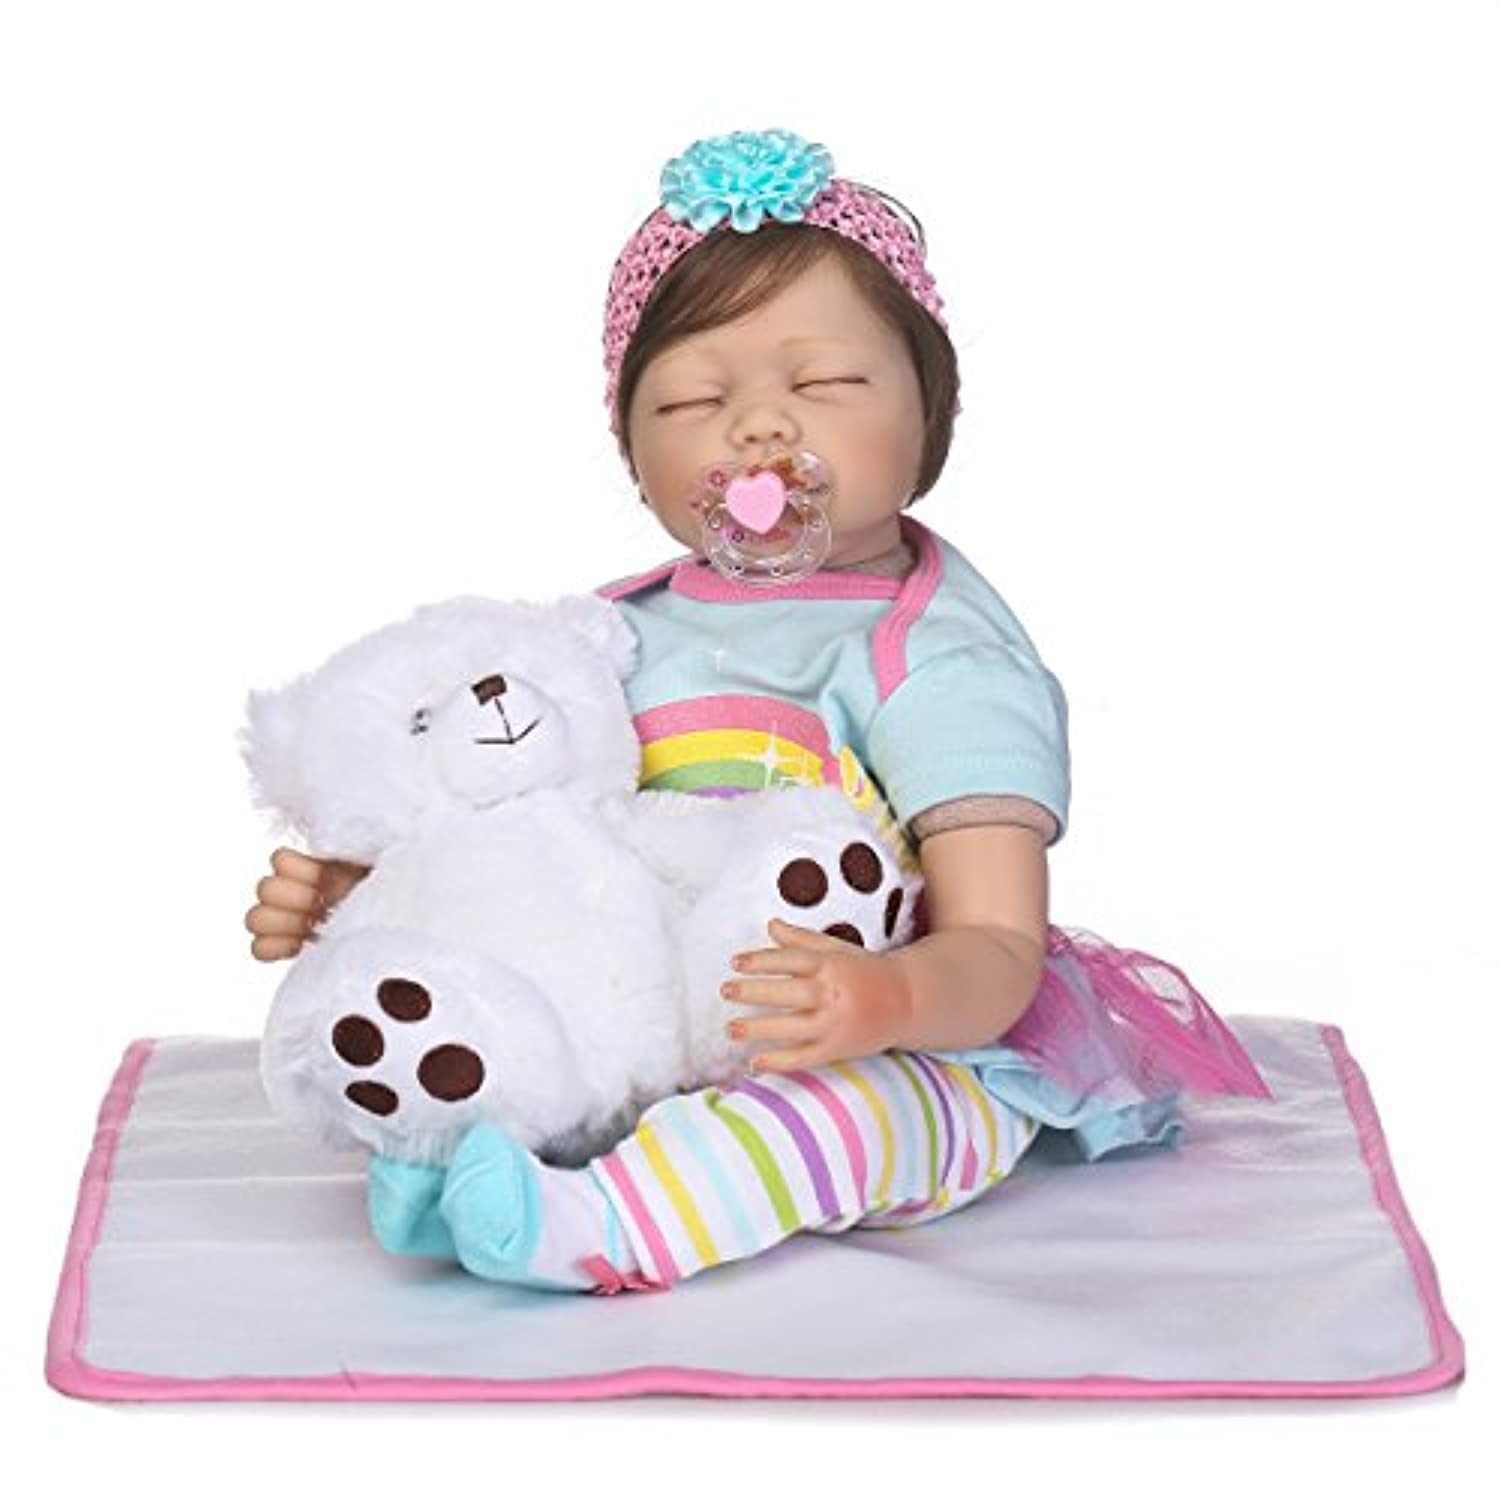 SanyDoll Rebornベビー人形ソフトSilicone 22インチ55 cm磁気Lovely Lifelike Cute Lovely Baby b0763llqmw